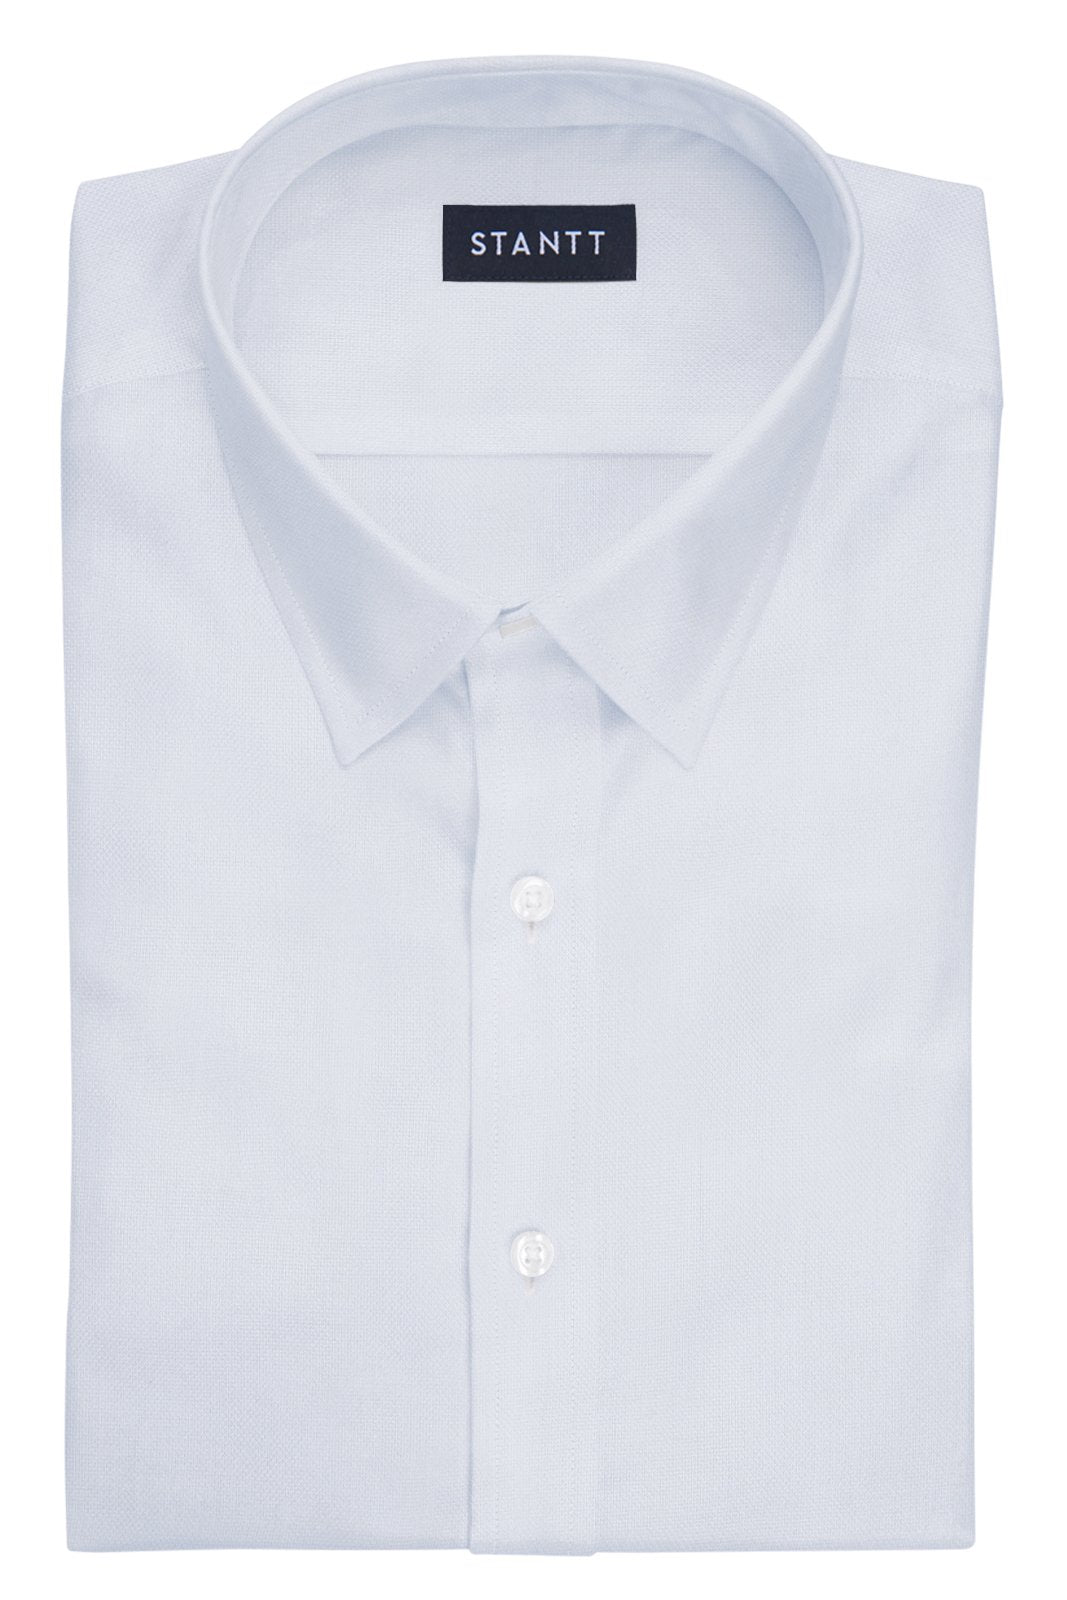 White Royal Oxford: Semi-Spread Collar, French Cuff